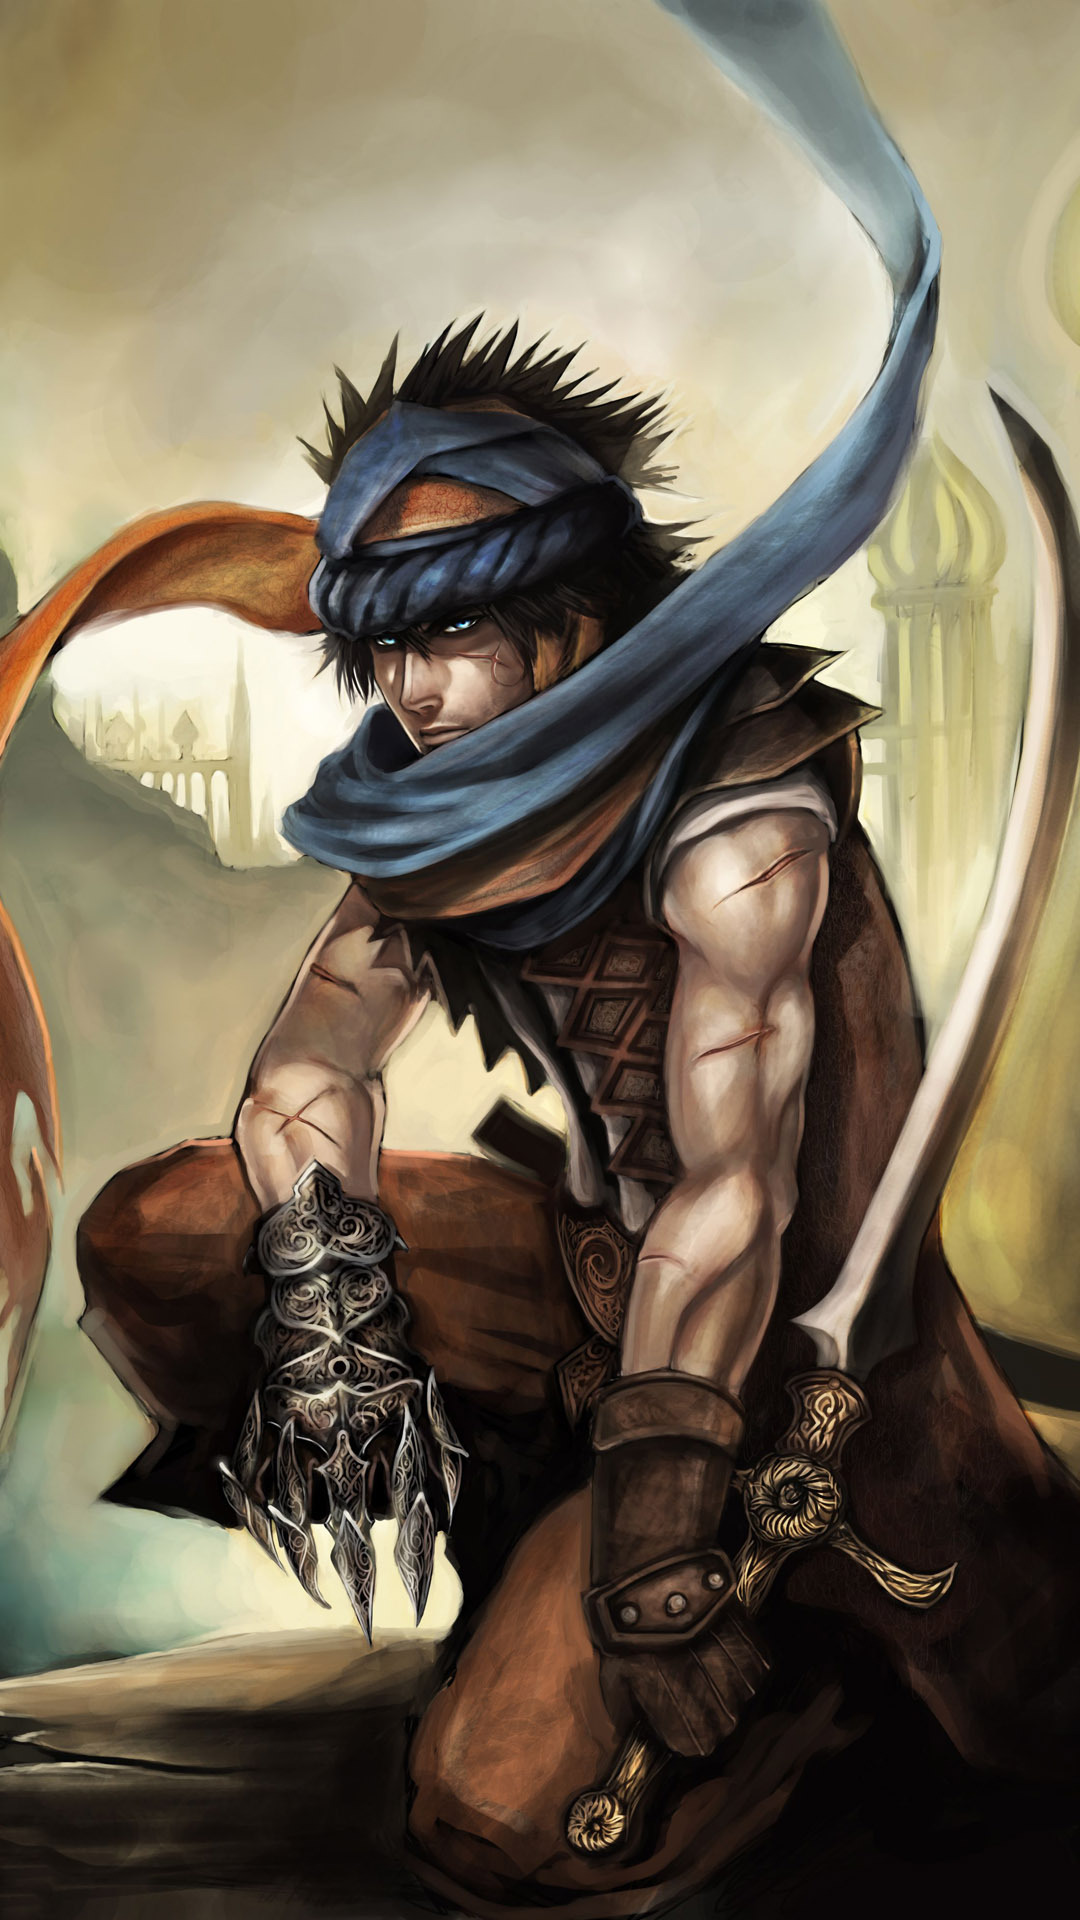 Wallpaper Chelsea 3d Android Download Prince Of Persia Mobile Wallpaper Gallery